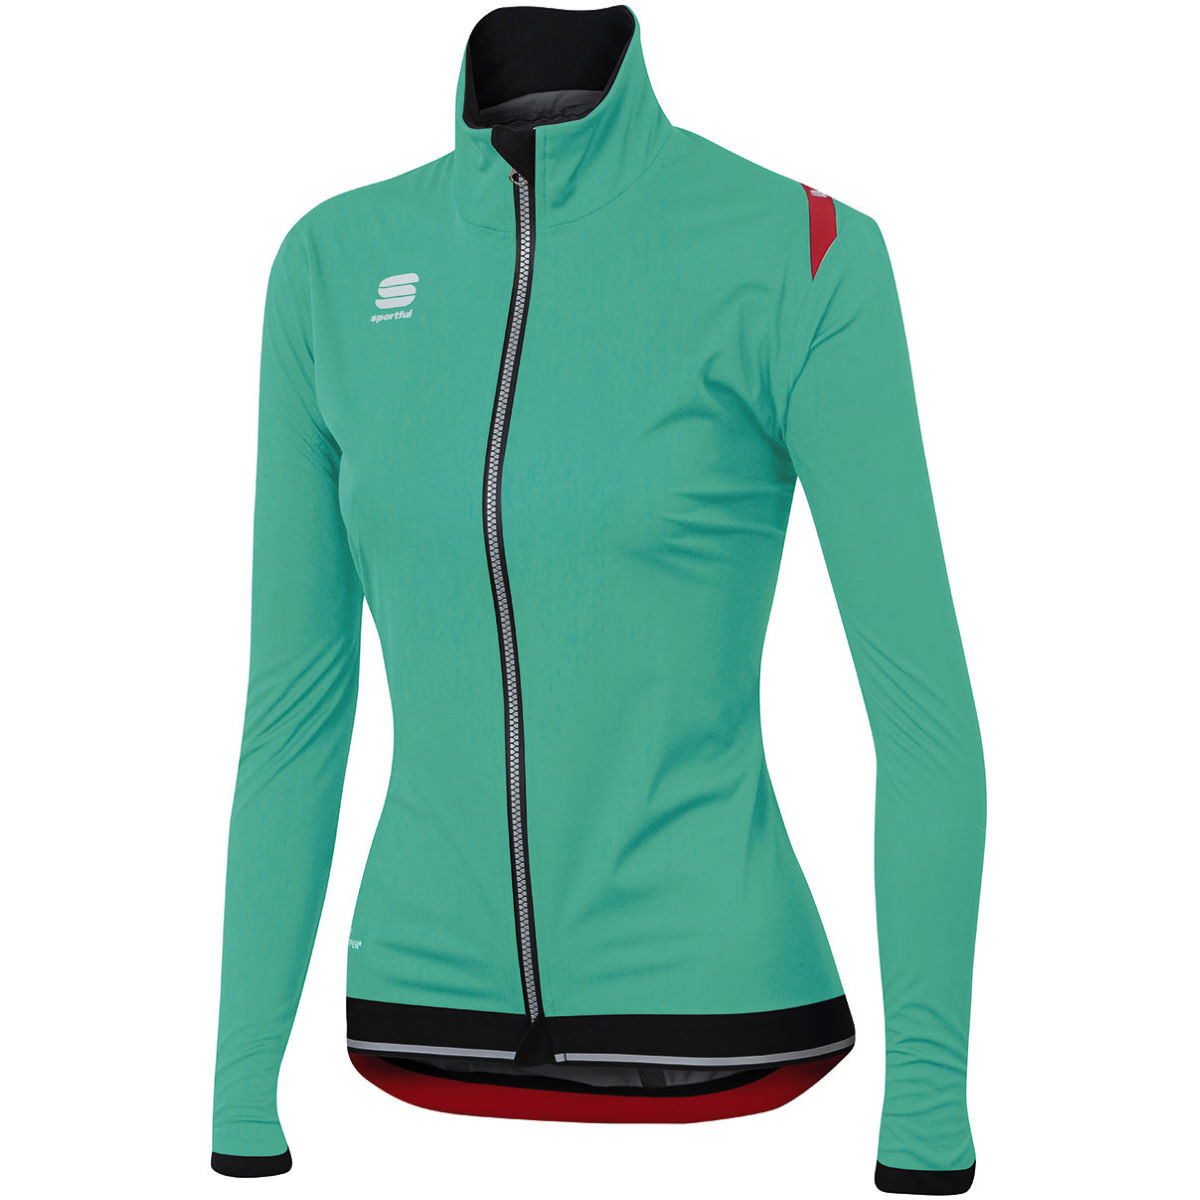 Veste Femme Sportful Fiandre Ultimate Windstopper - L Vestes